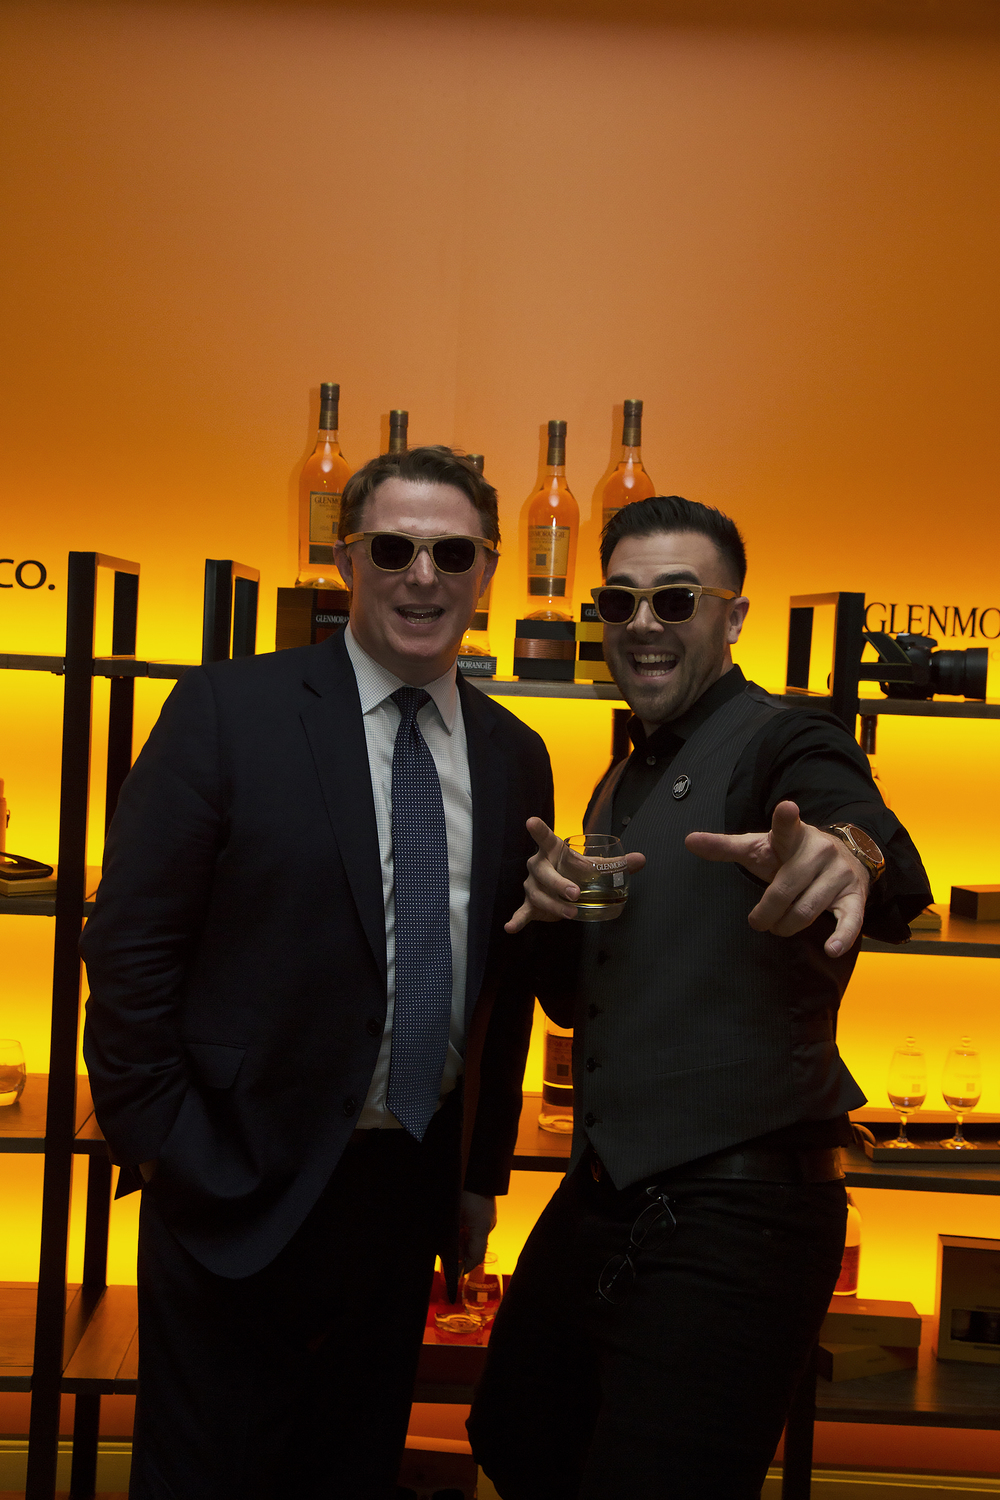 Glenmorangie-launch-67.jpg